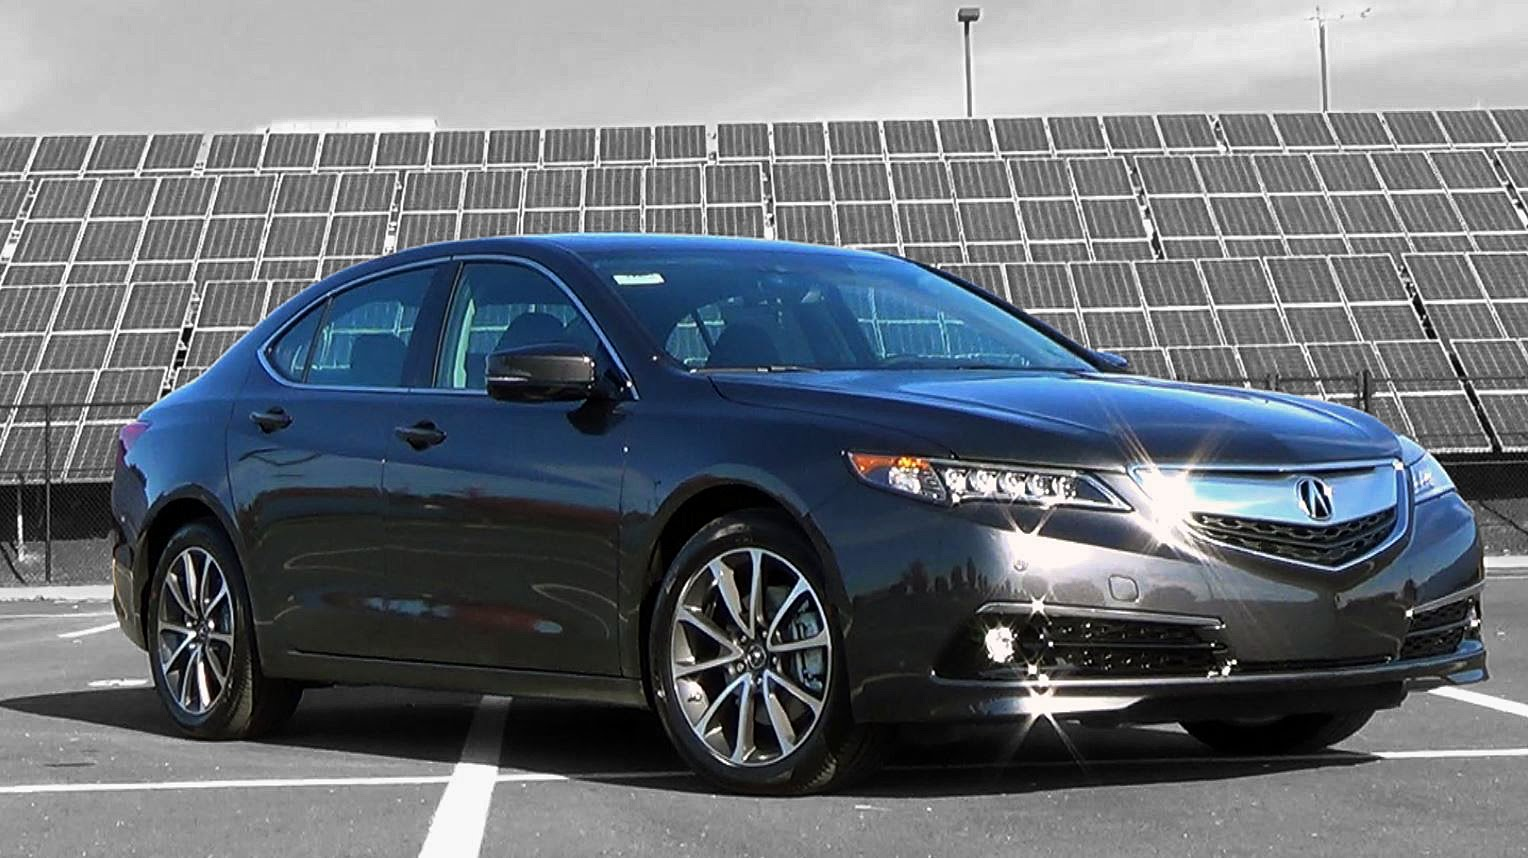 2016 Acura Tlx Photos, Informations, Articles - BestCarMag.com